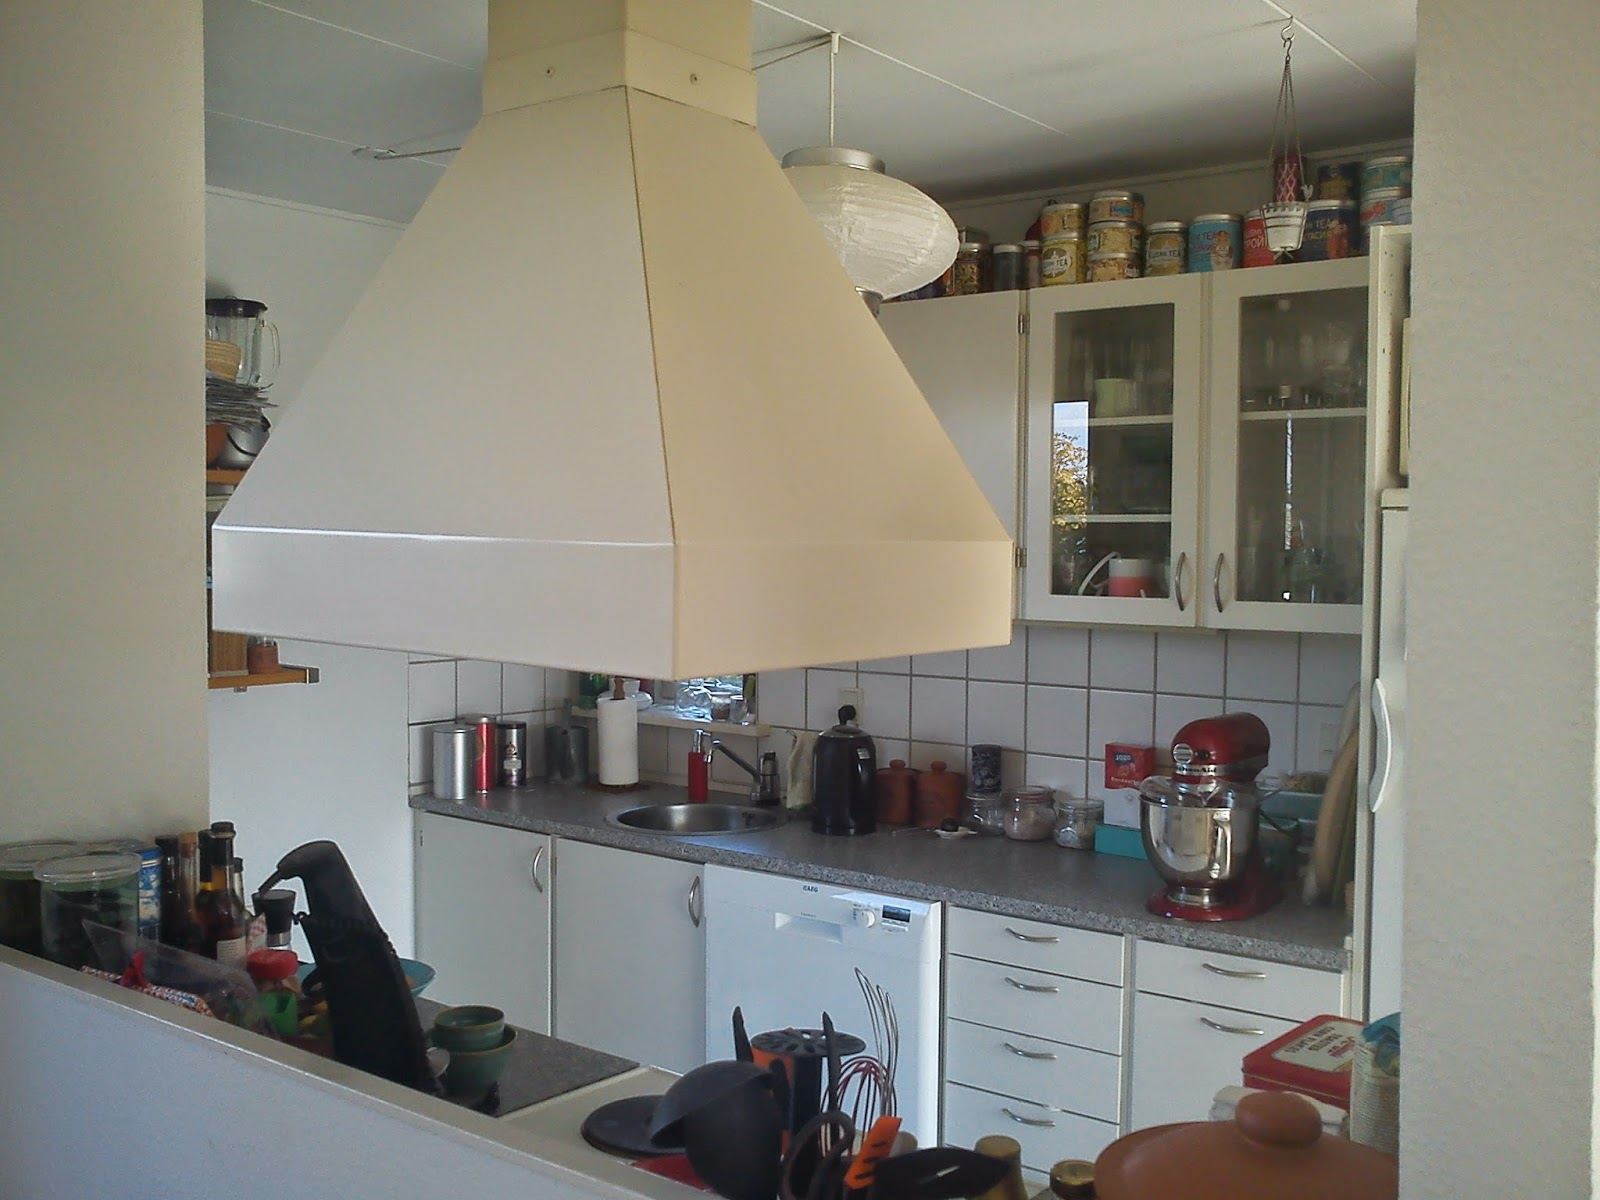 Kitchen of kiki: september 2014